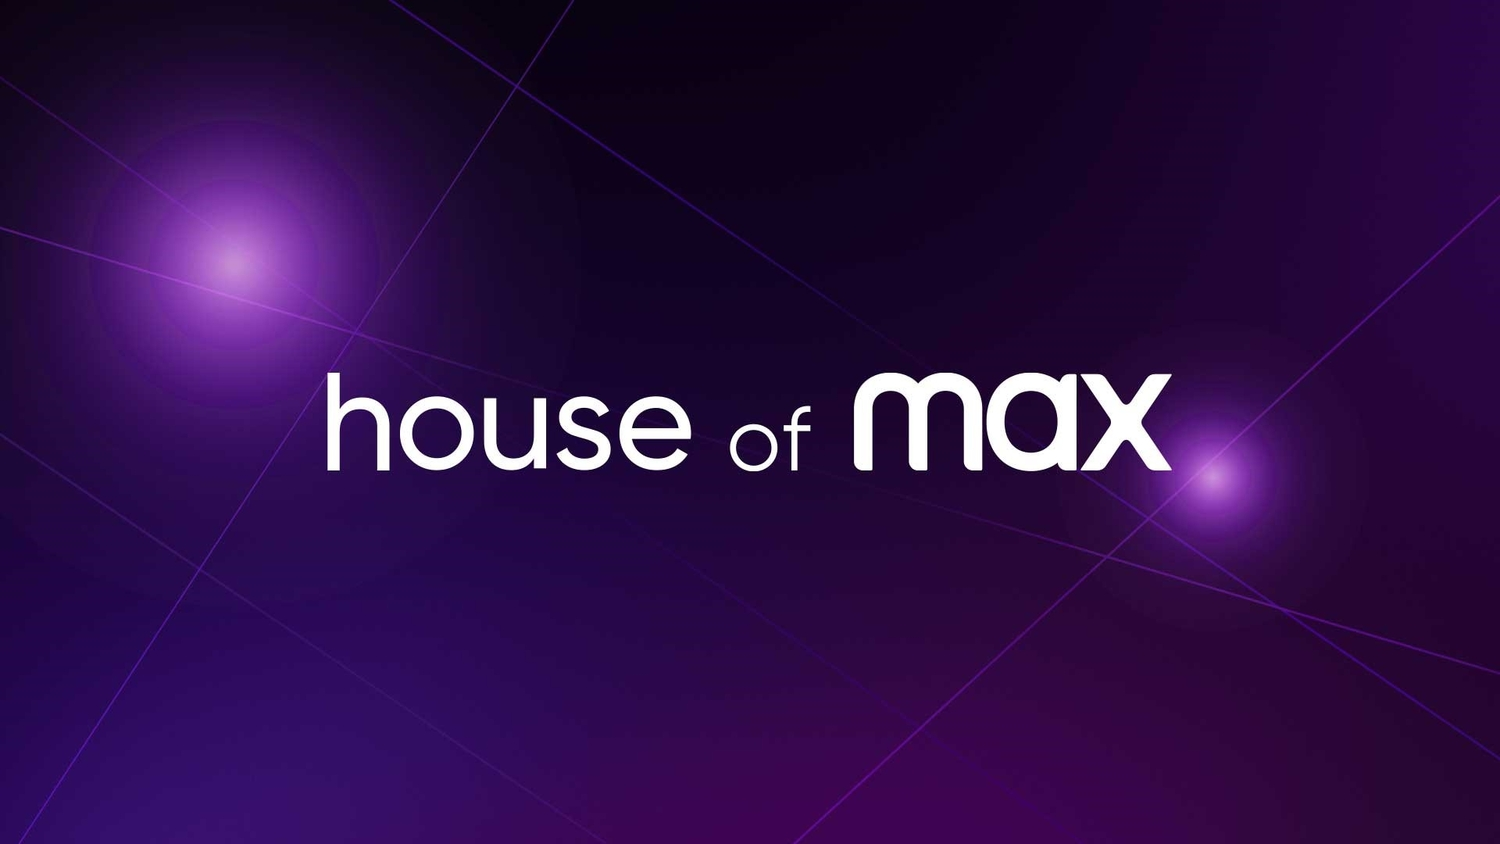 WarnerMedia Unveils House of Max Brand Studio for Advertisers